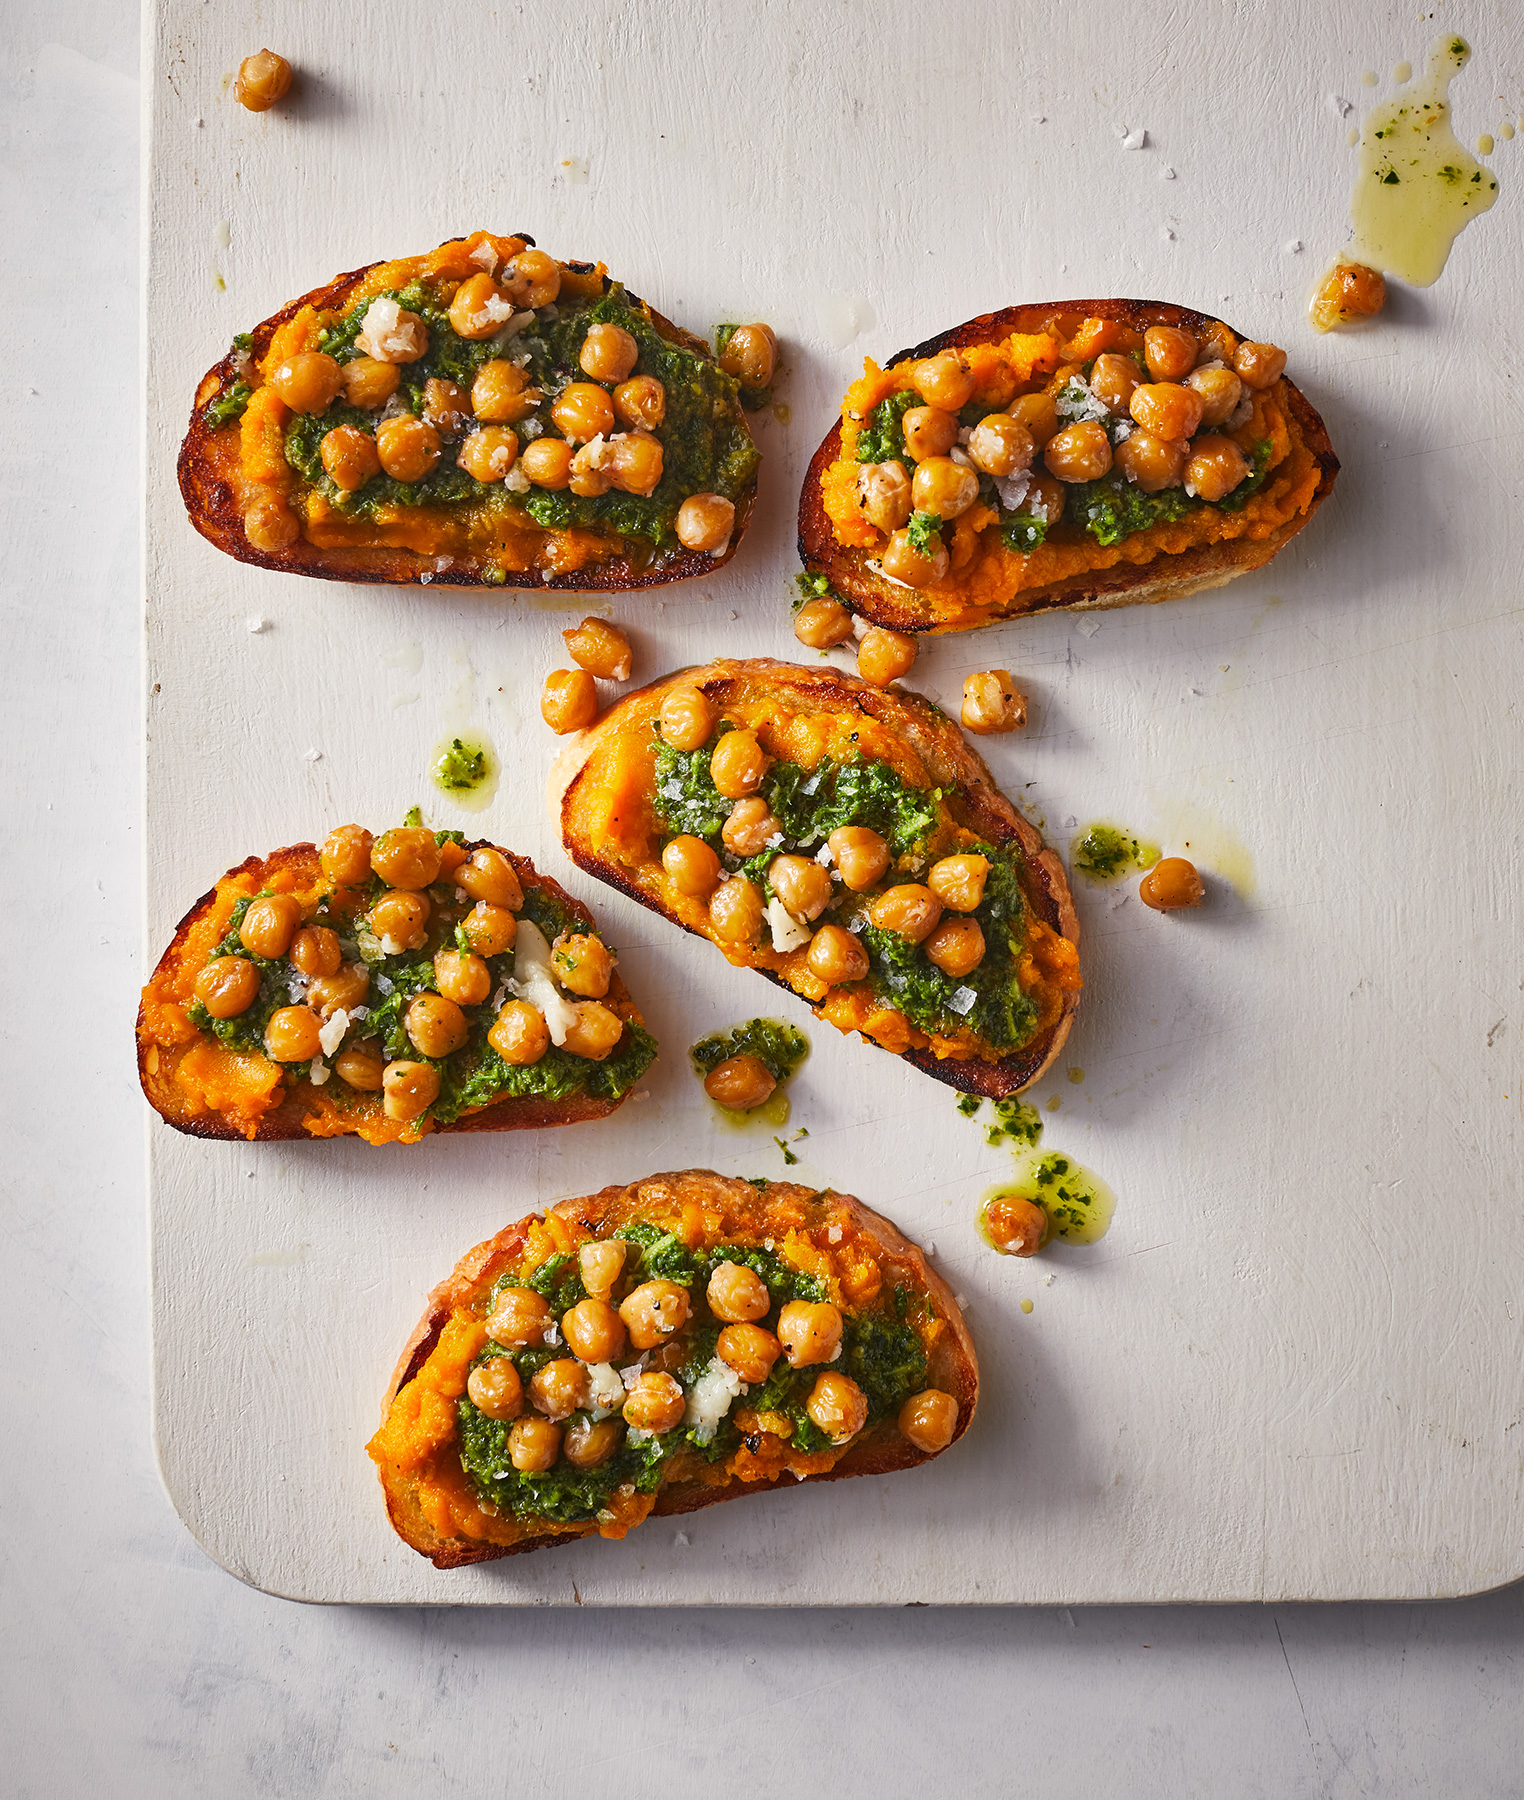 Garlic Toast With Squash, Pesto, and Olive-Oil Braised Chickpeas (1018FOO)